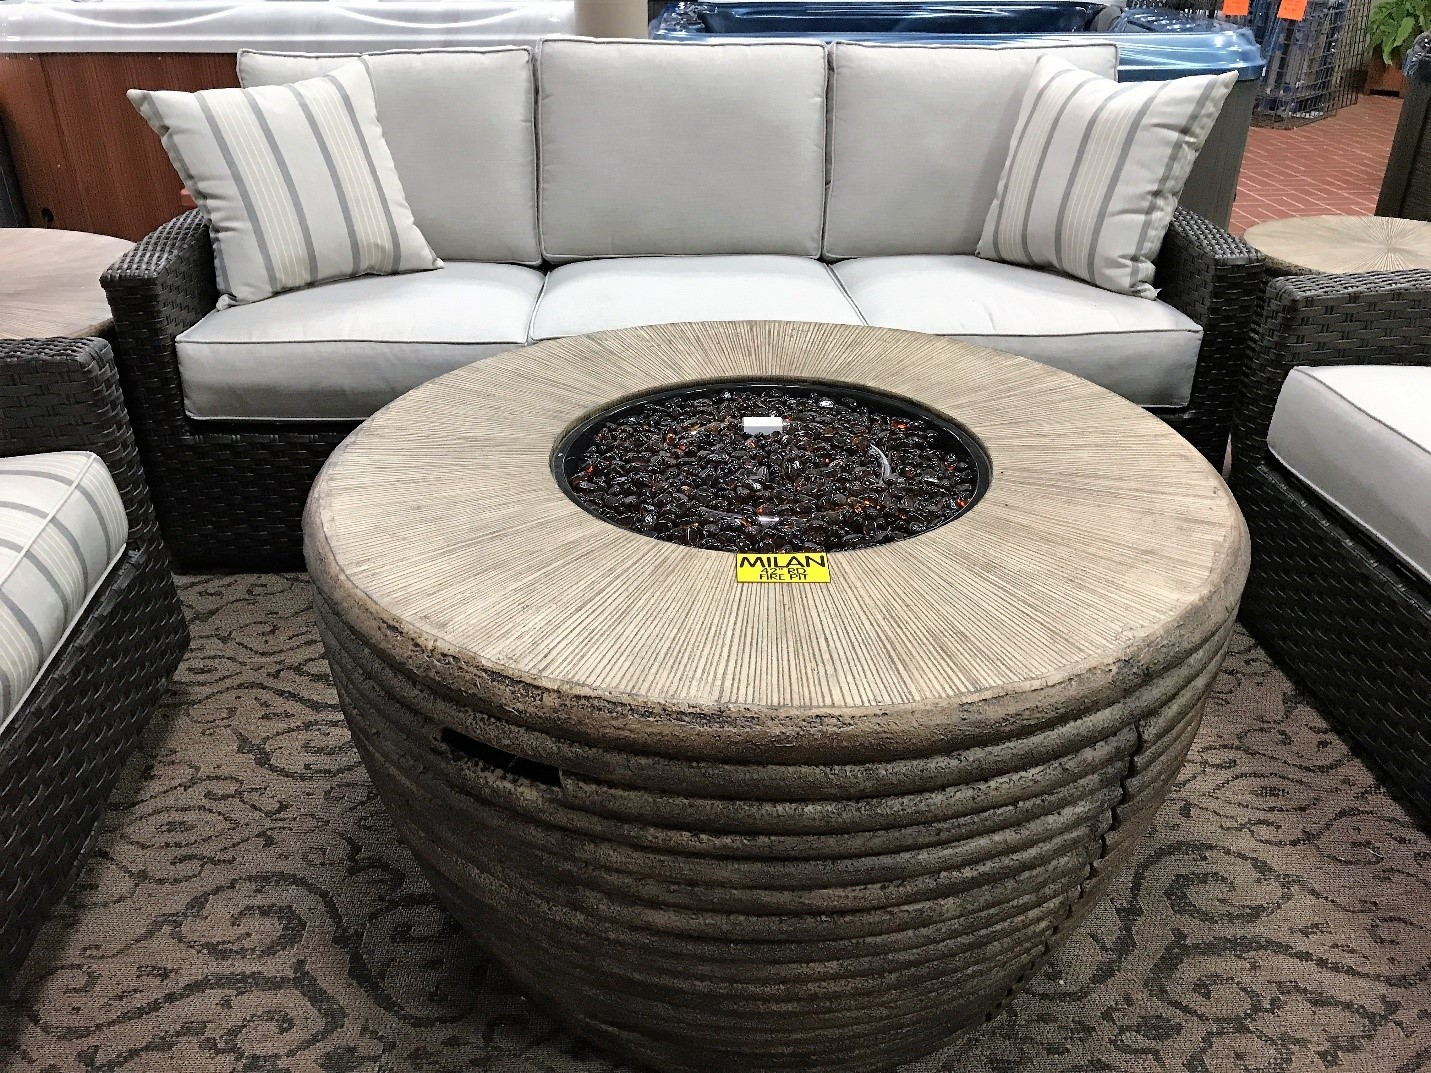 Biscayne Deep Seating Group with Coffee Table.jpg